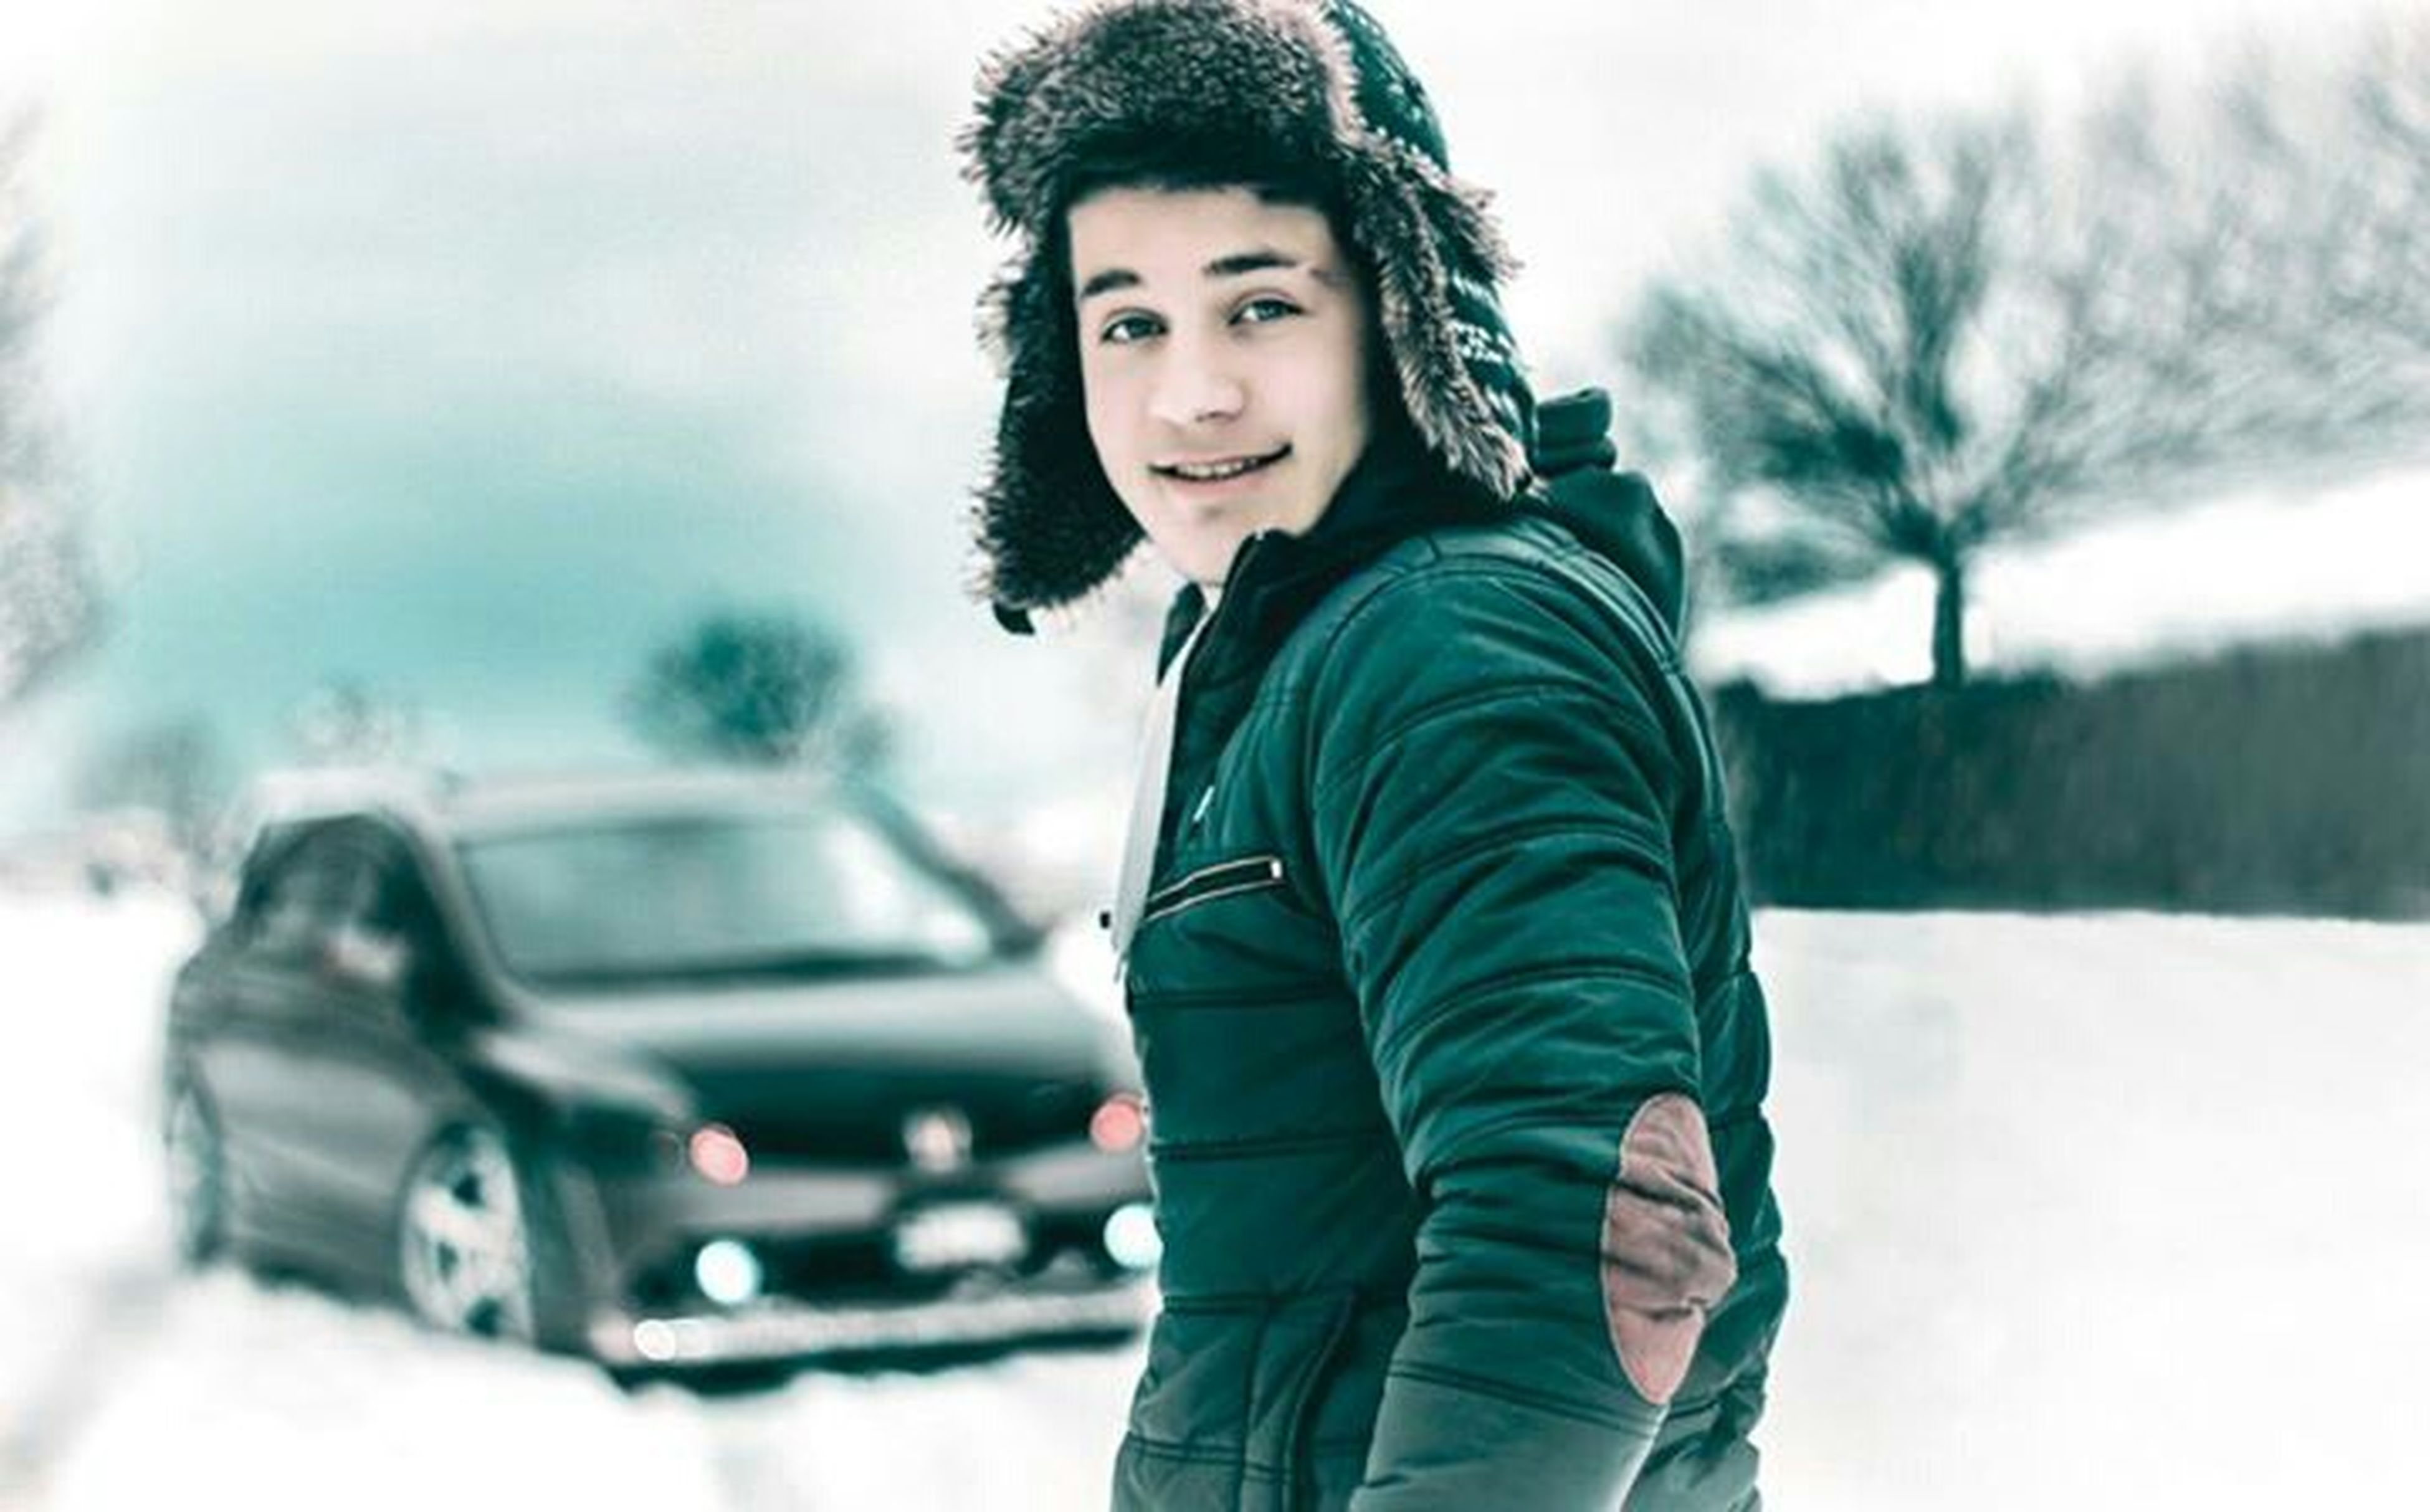 winter, cold temperature, lifestyles, snow, person, looking at camera, leisure activity, casual clothing, portrait, front view, warm clothing, three quarter length, focus on foreground, waist up, season, young adult, weather, standing